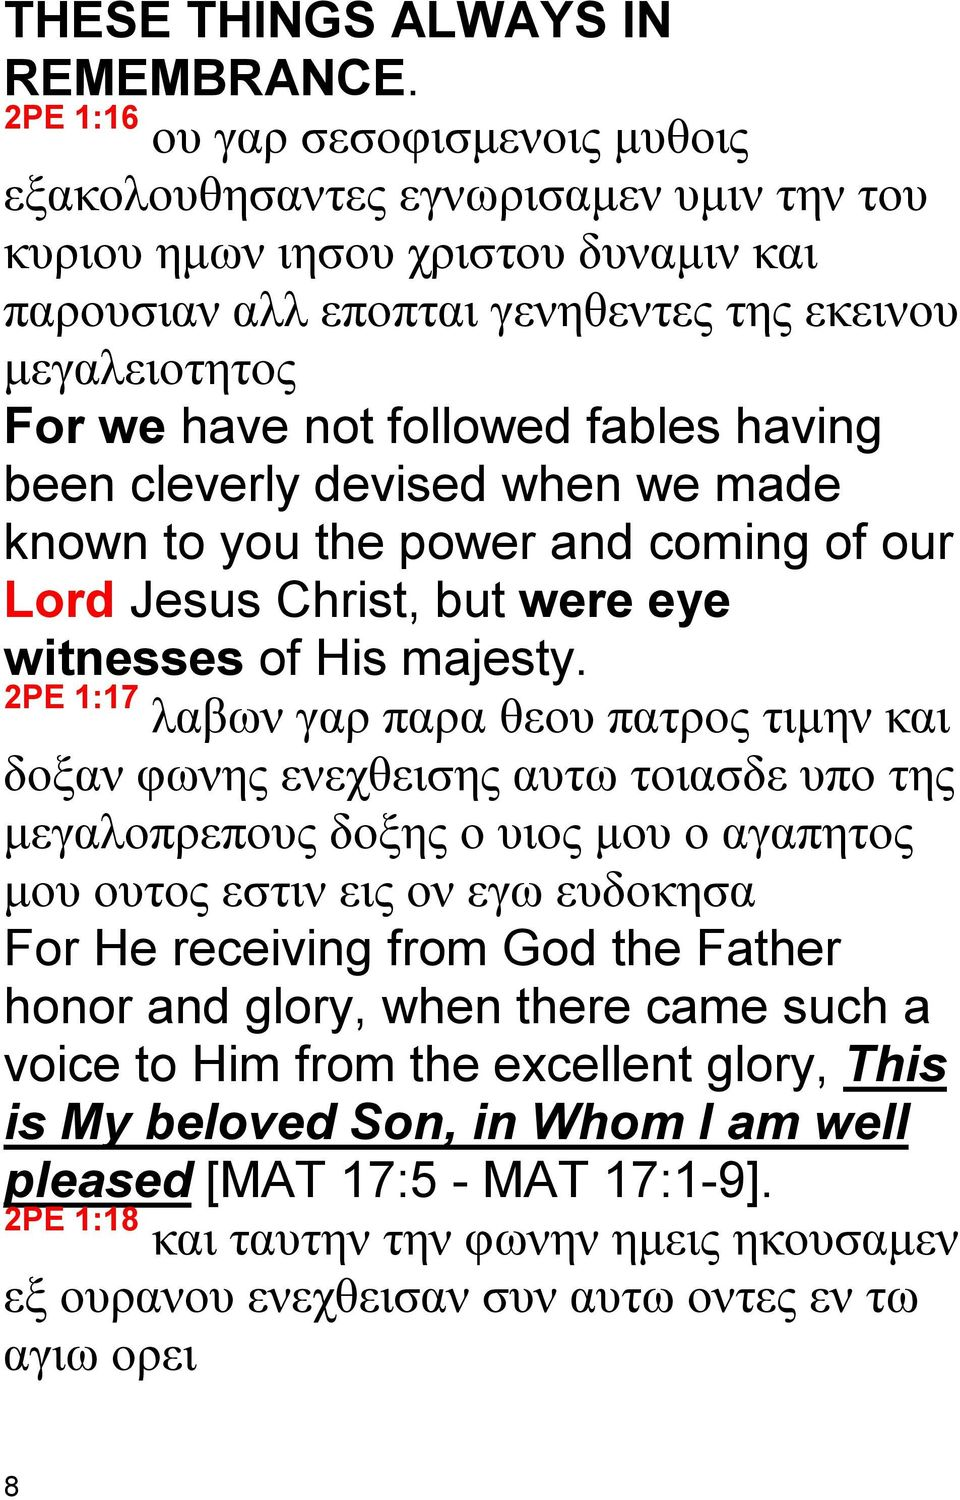 followed fables having been cleverly devised when we made known to you the power and coming of our Lord Jesus Christ, but were eye witnesses of His majesty.